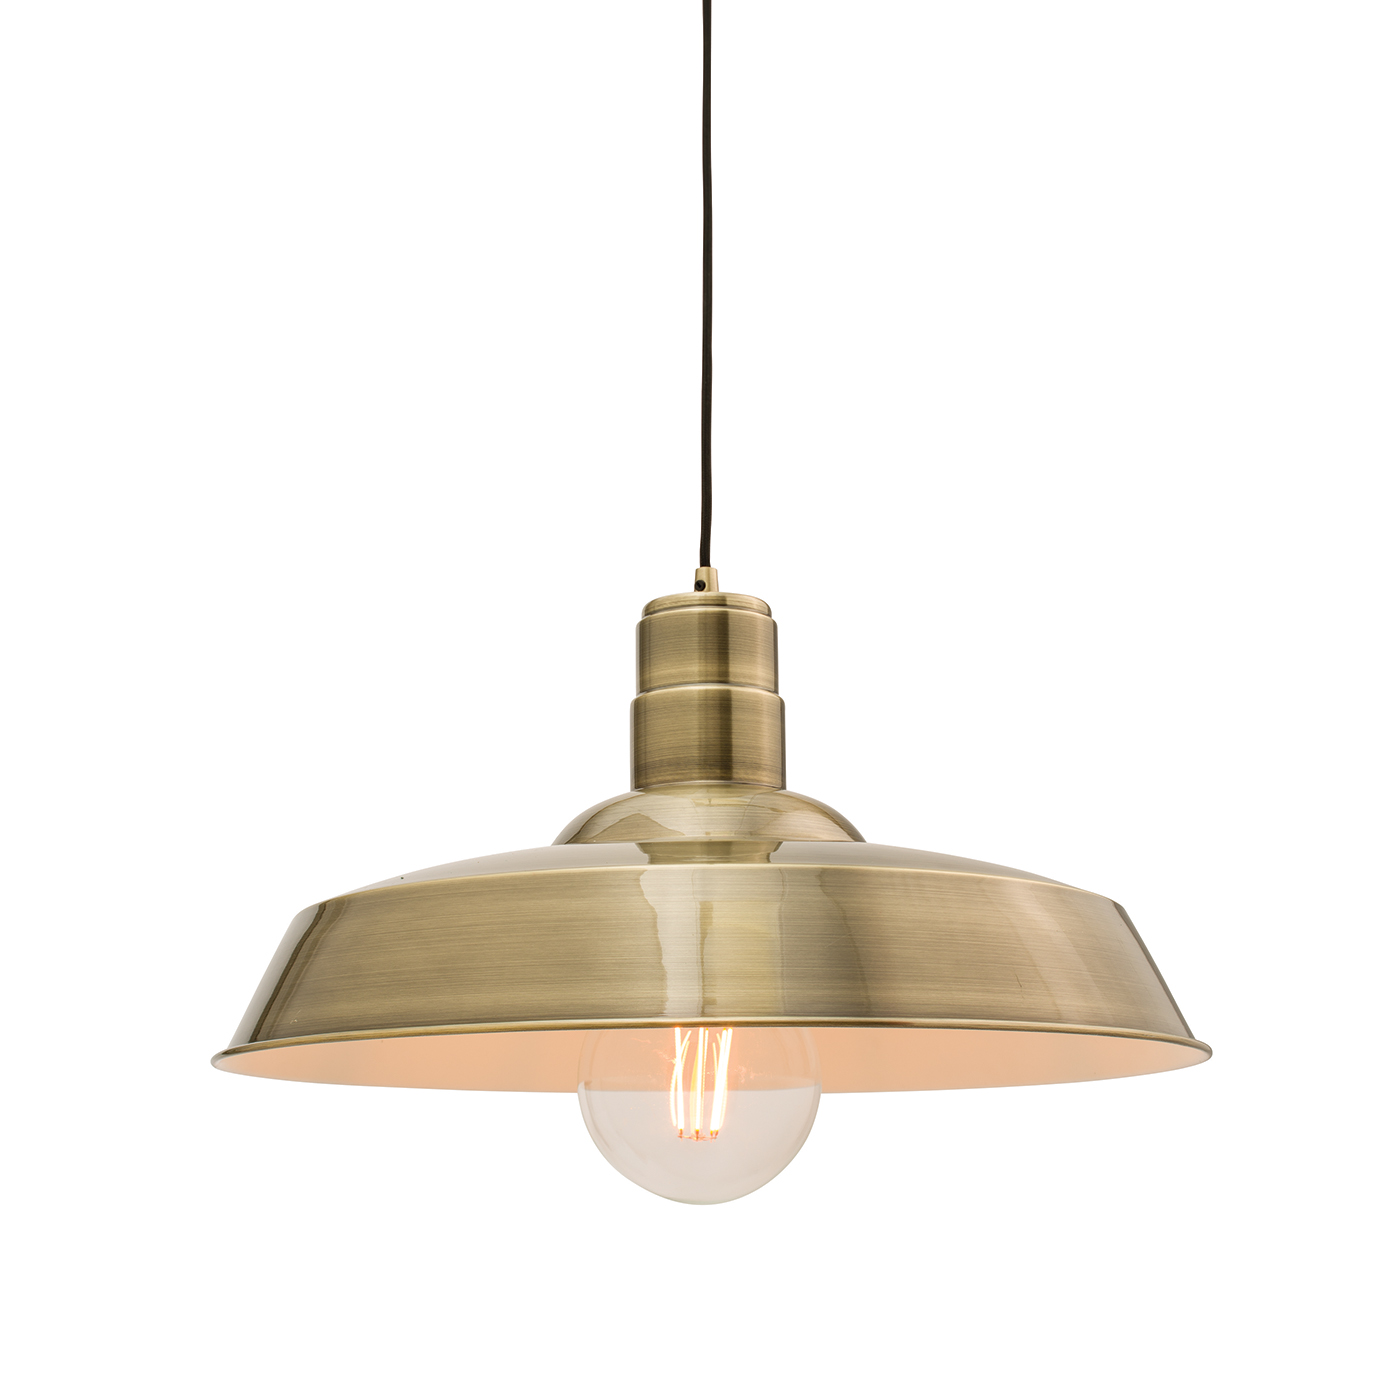 Endon Moore pendant 1x 60W Gloss antique brass plate Thumbnail 1